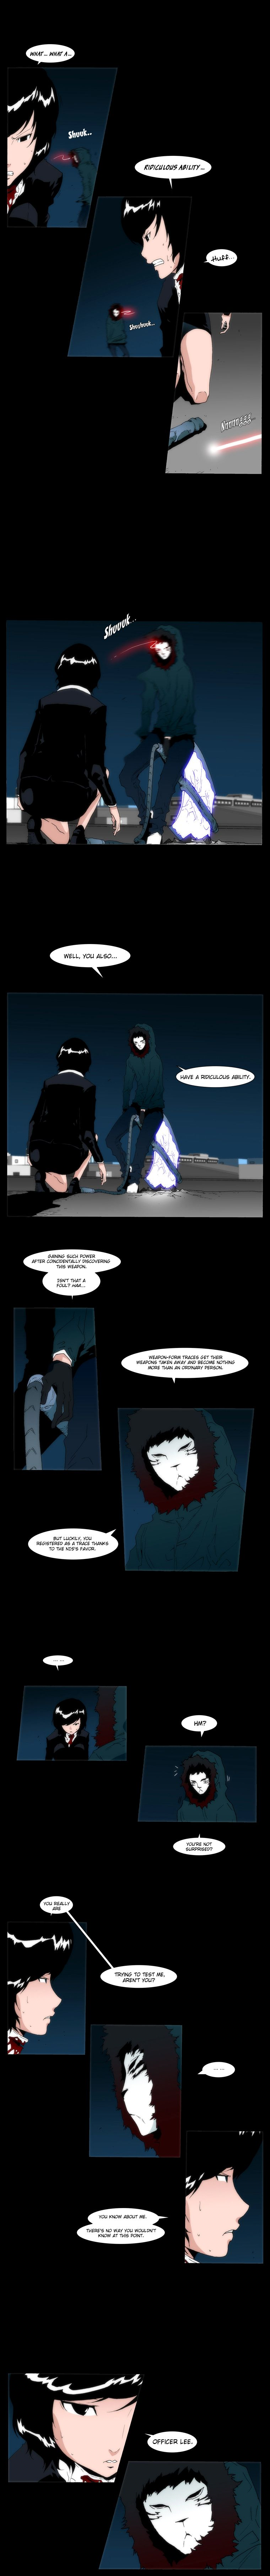 Trace 1.5 16 Page 2